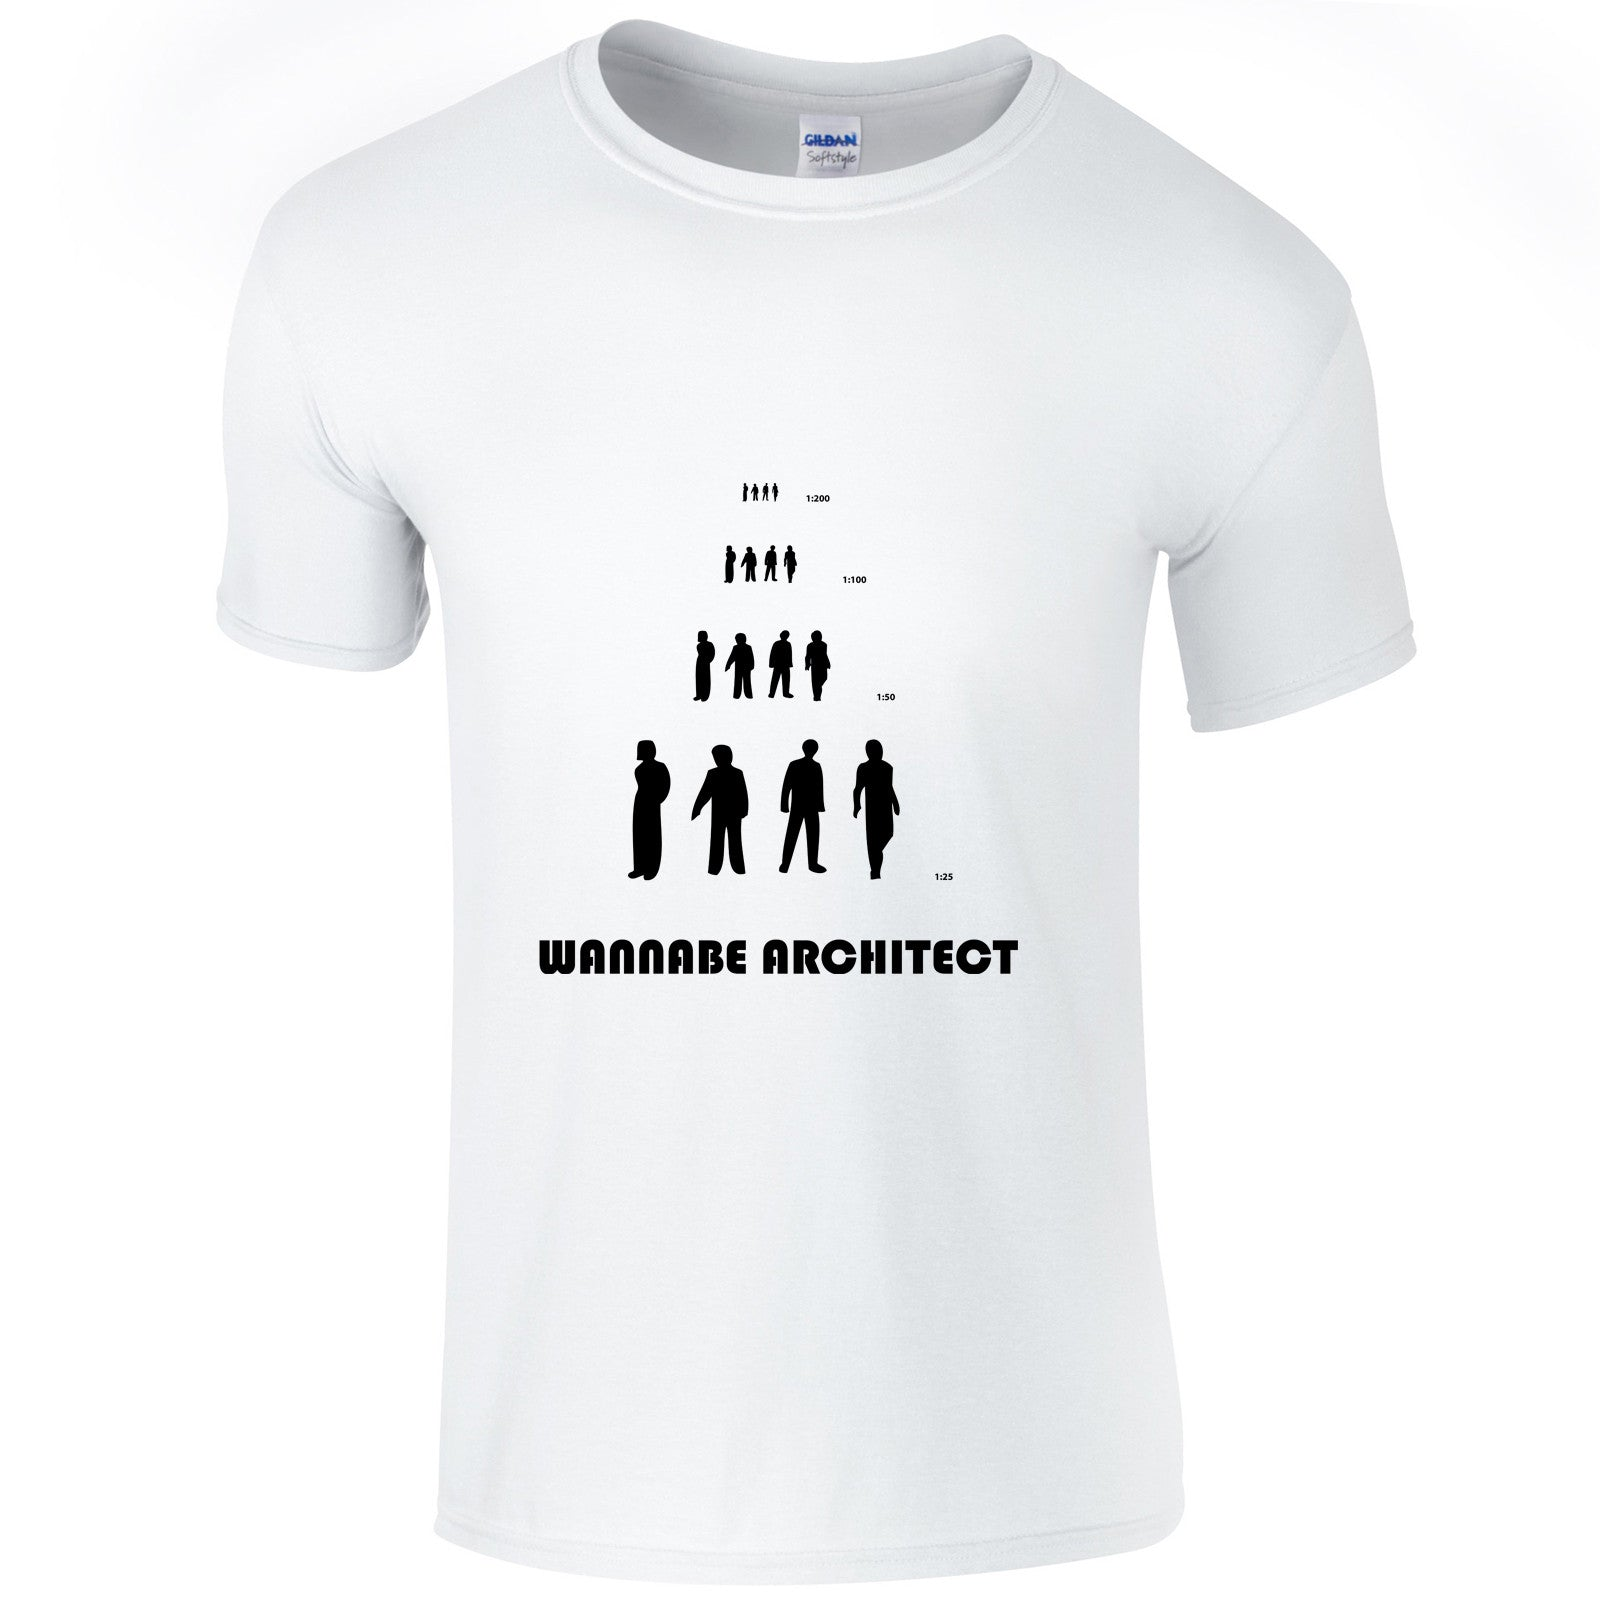 Wannabe architect t-shirt - ARTsy clothing - 2